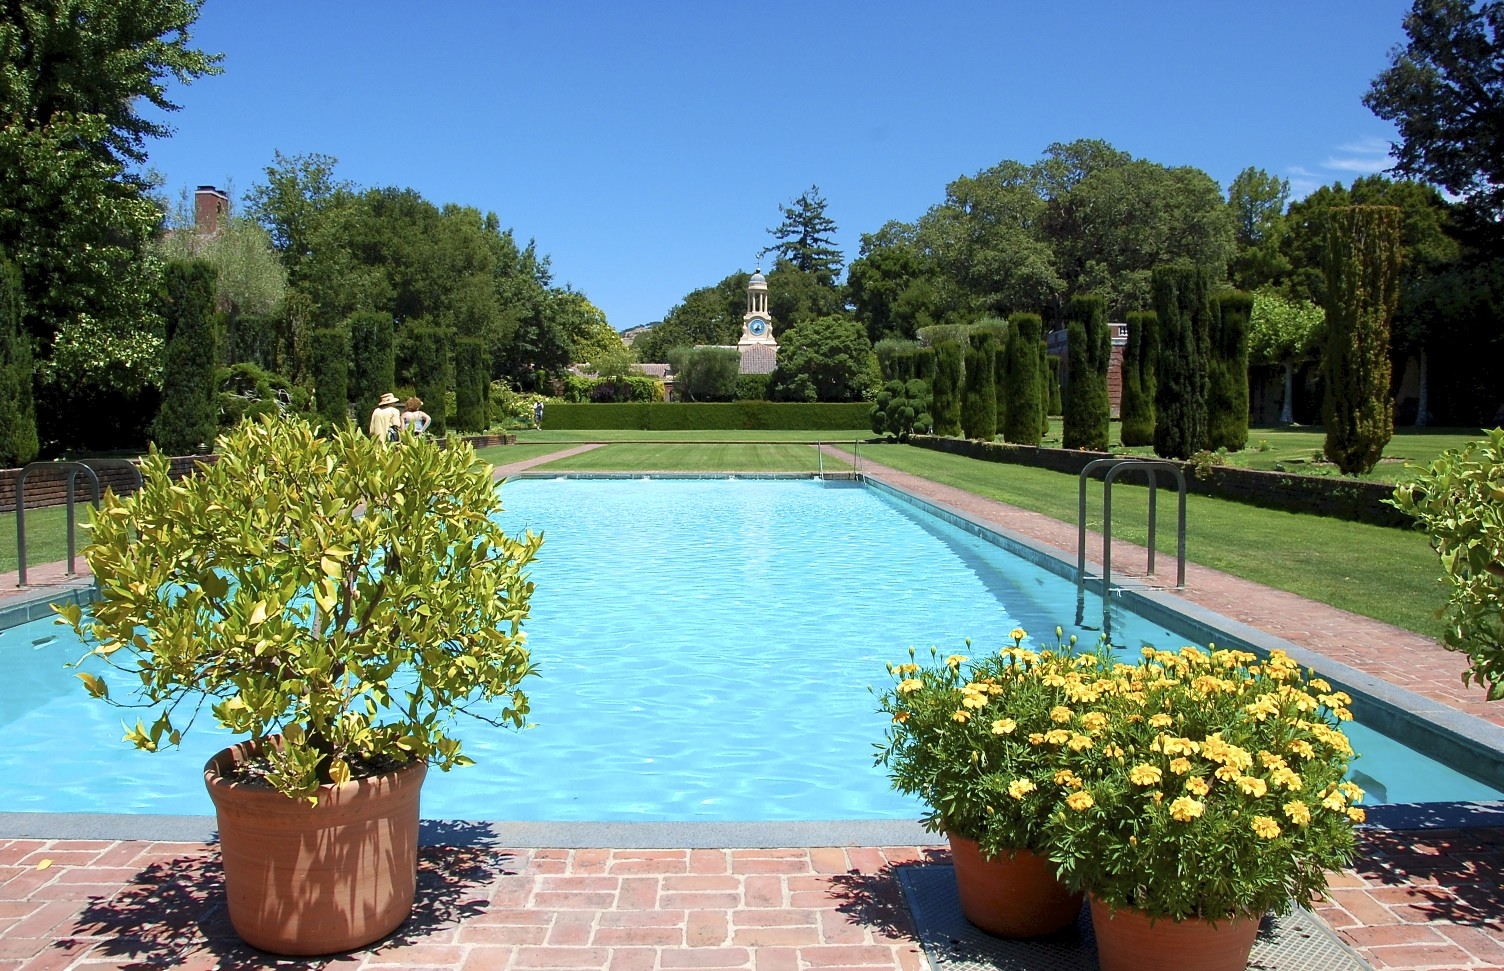 Travels with l and sometimes z f filoli mansion and for Filoli garden pool